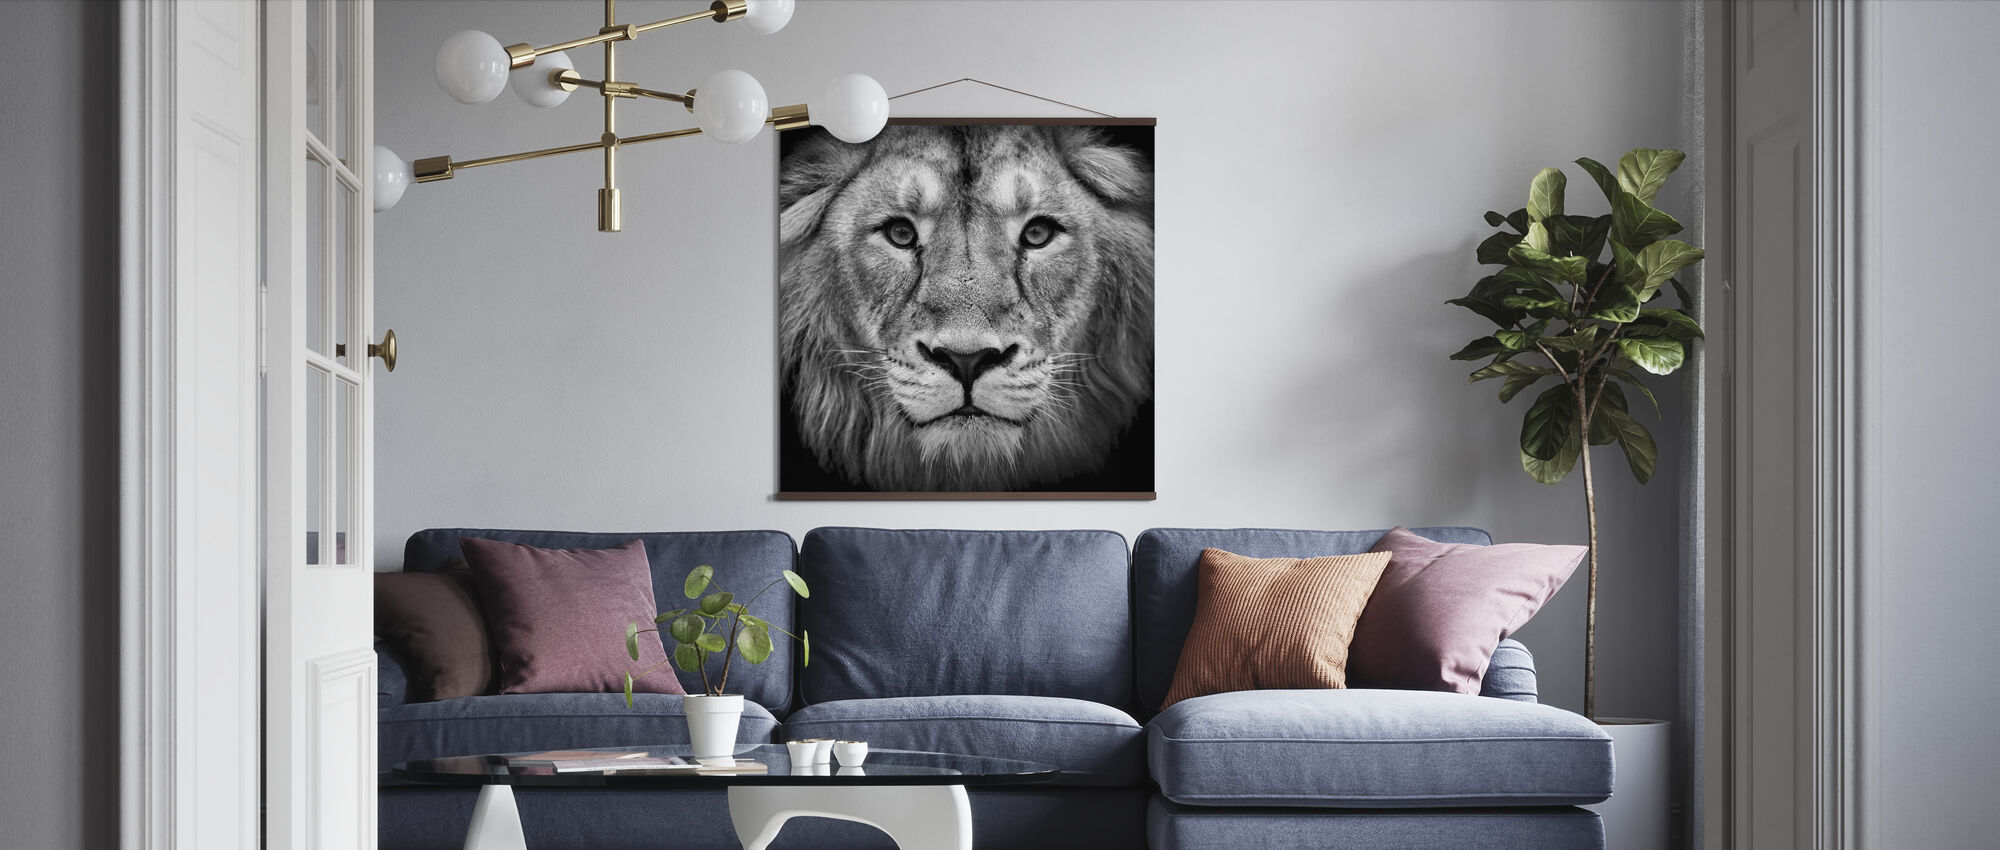 Wise Lion, black and white - Poster - Living Room